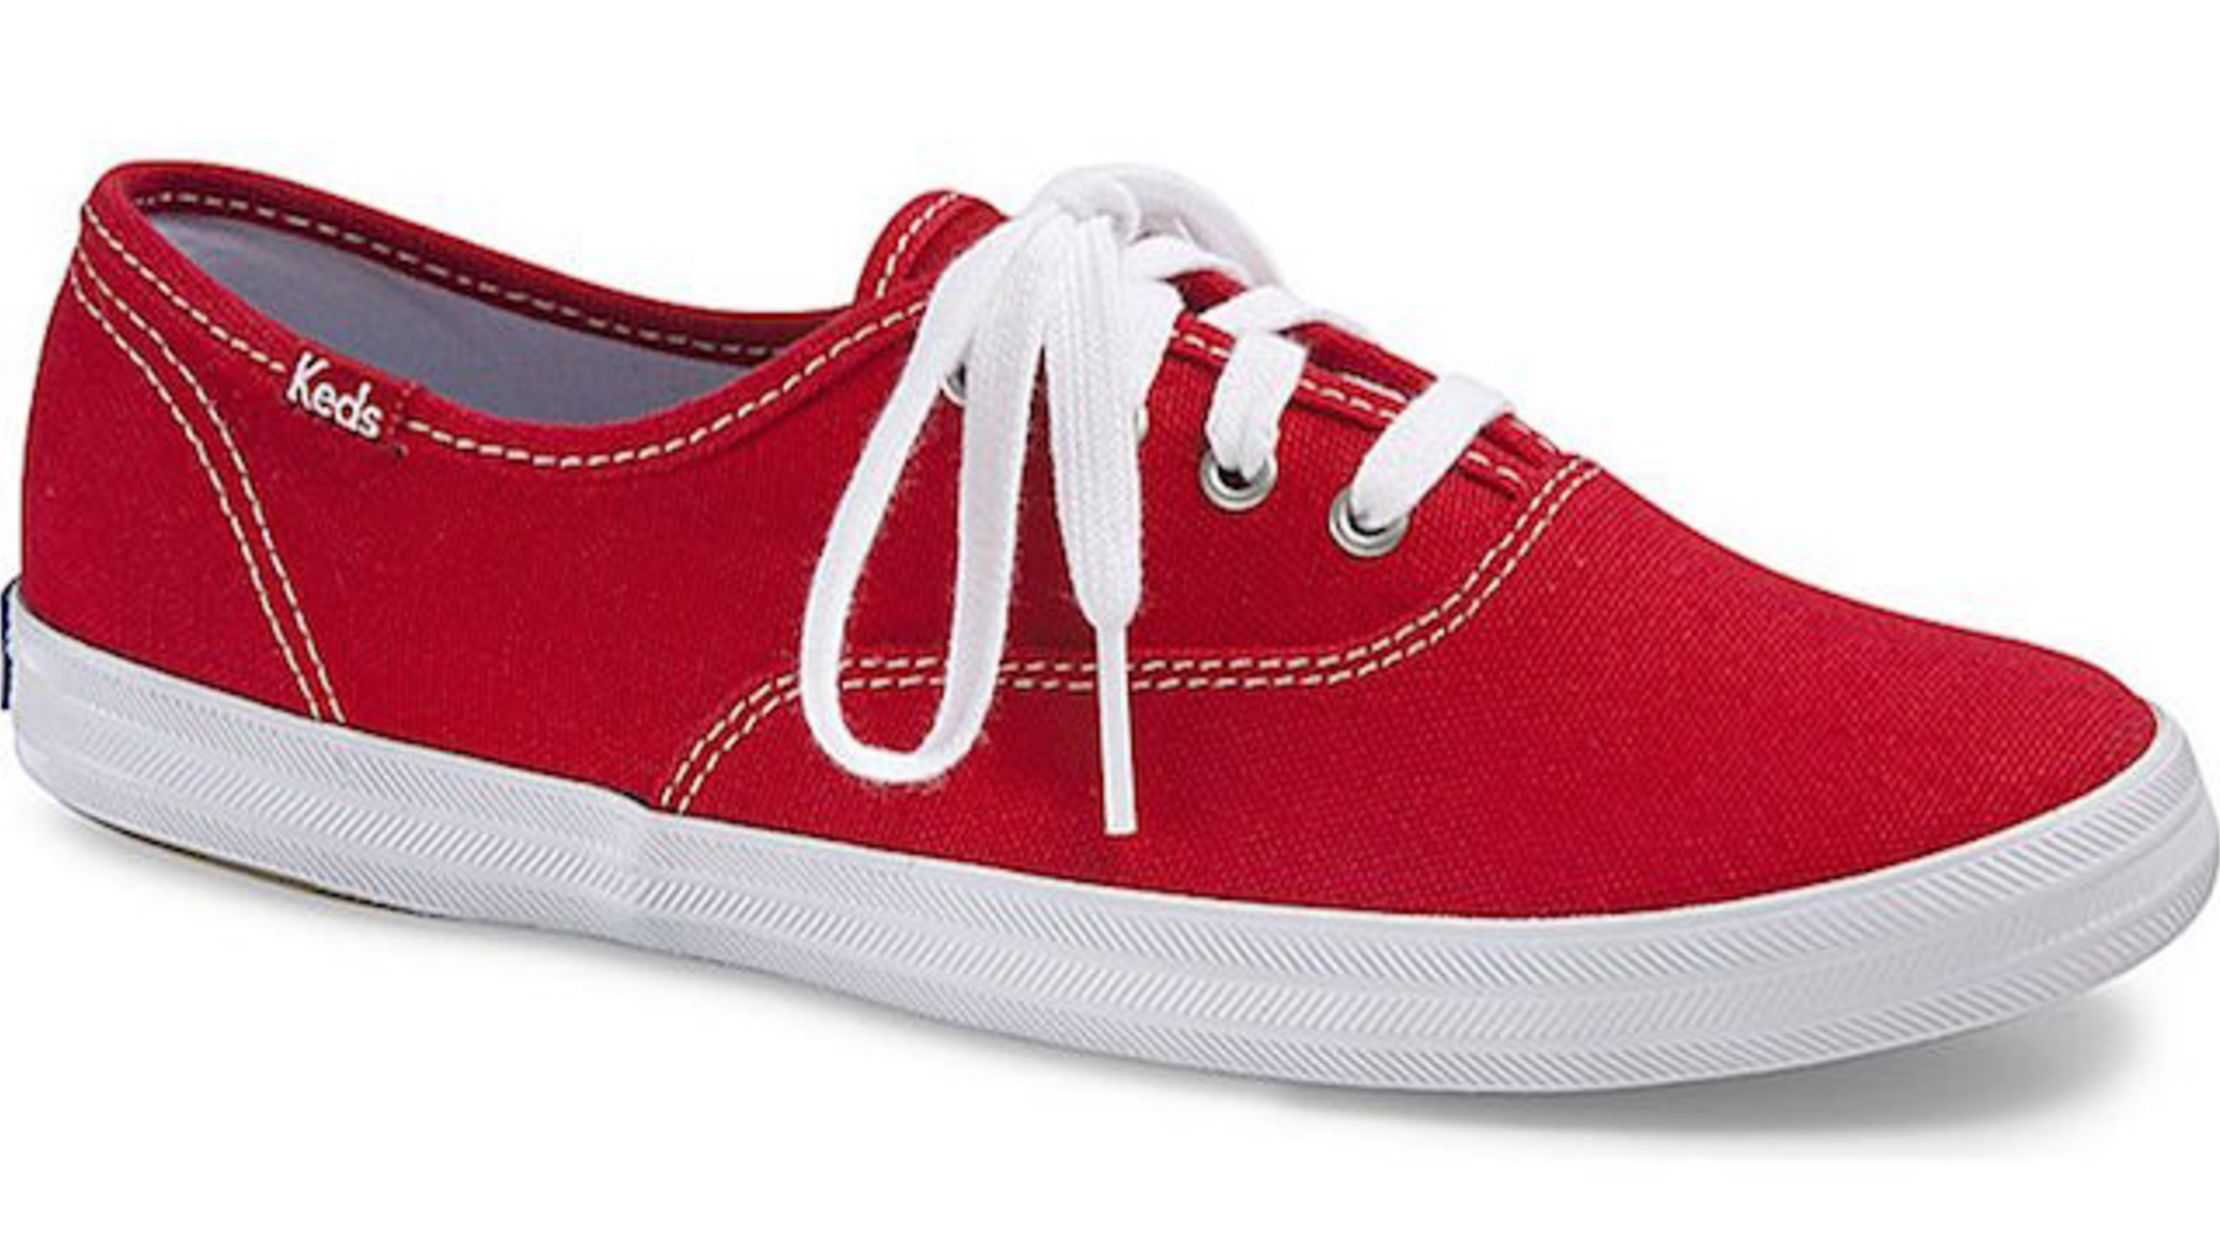 11 Comfy Facts About Keds Mental Floss  Mental Floss